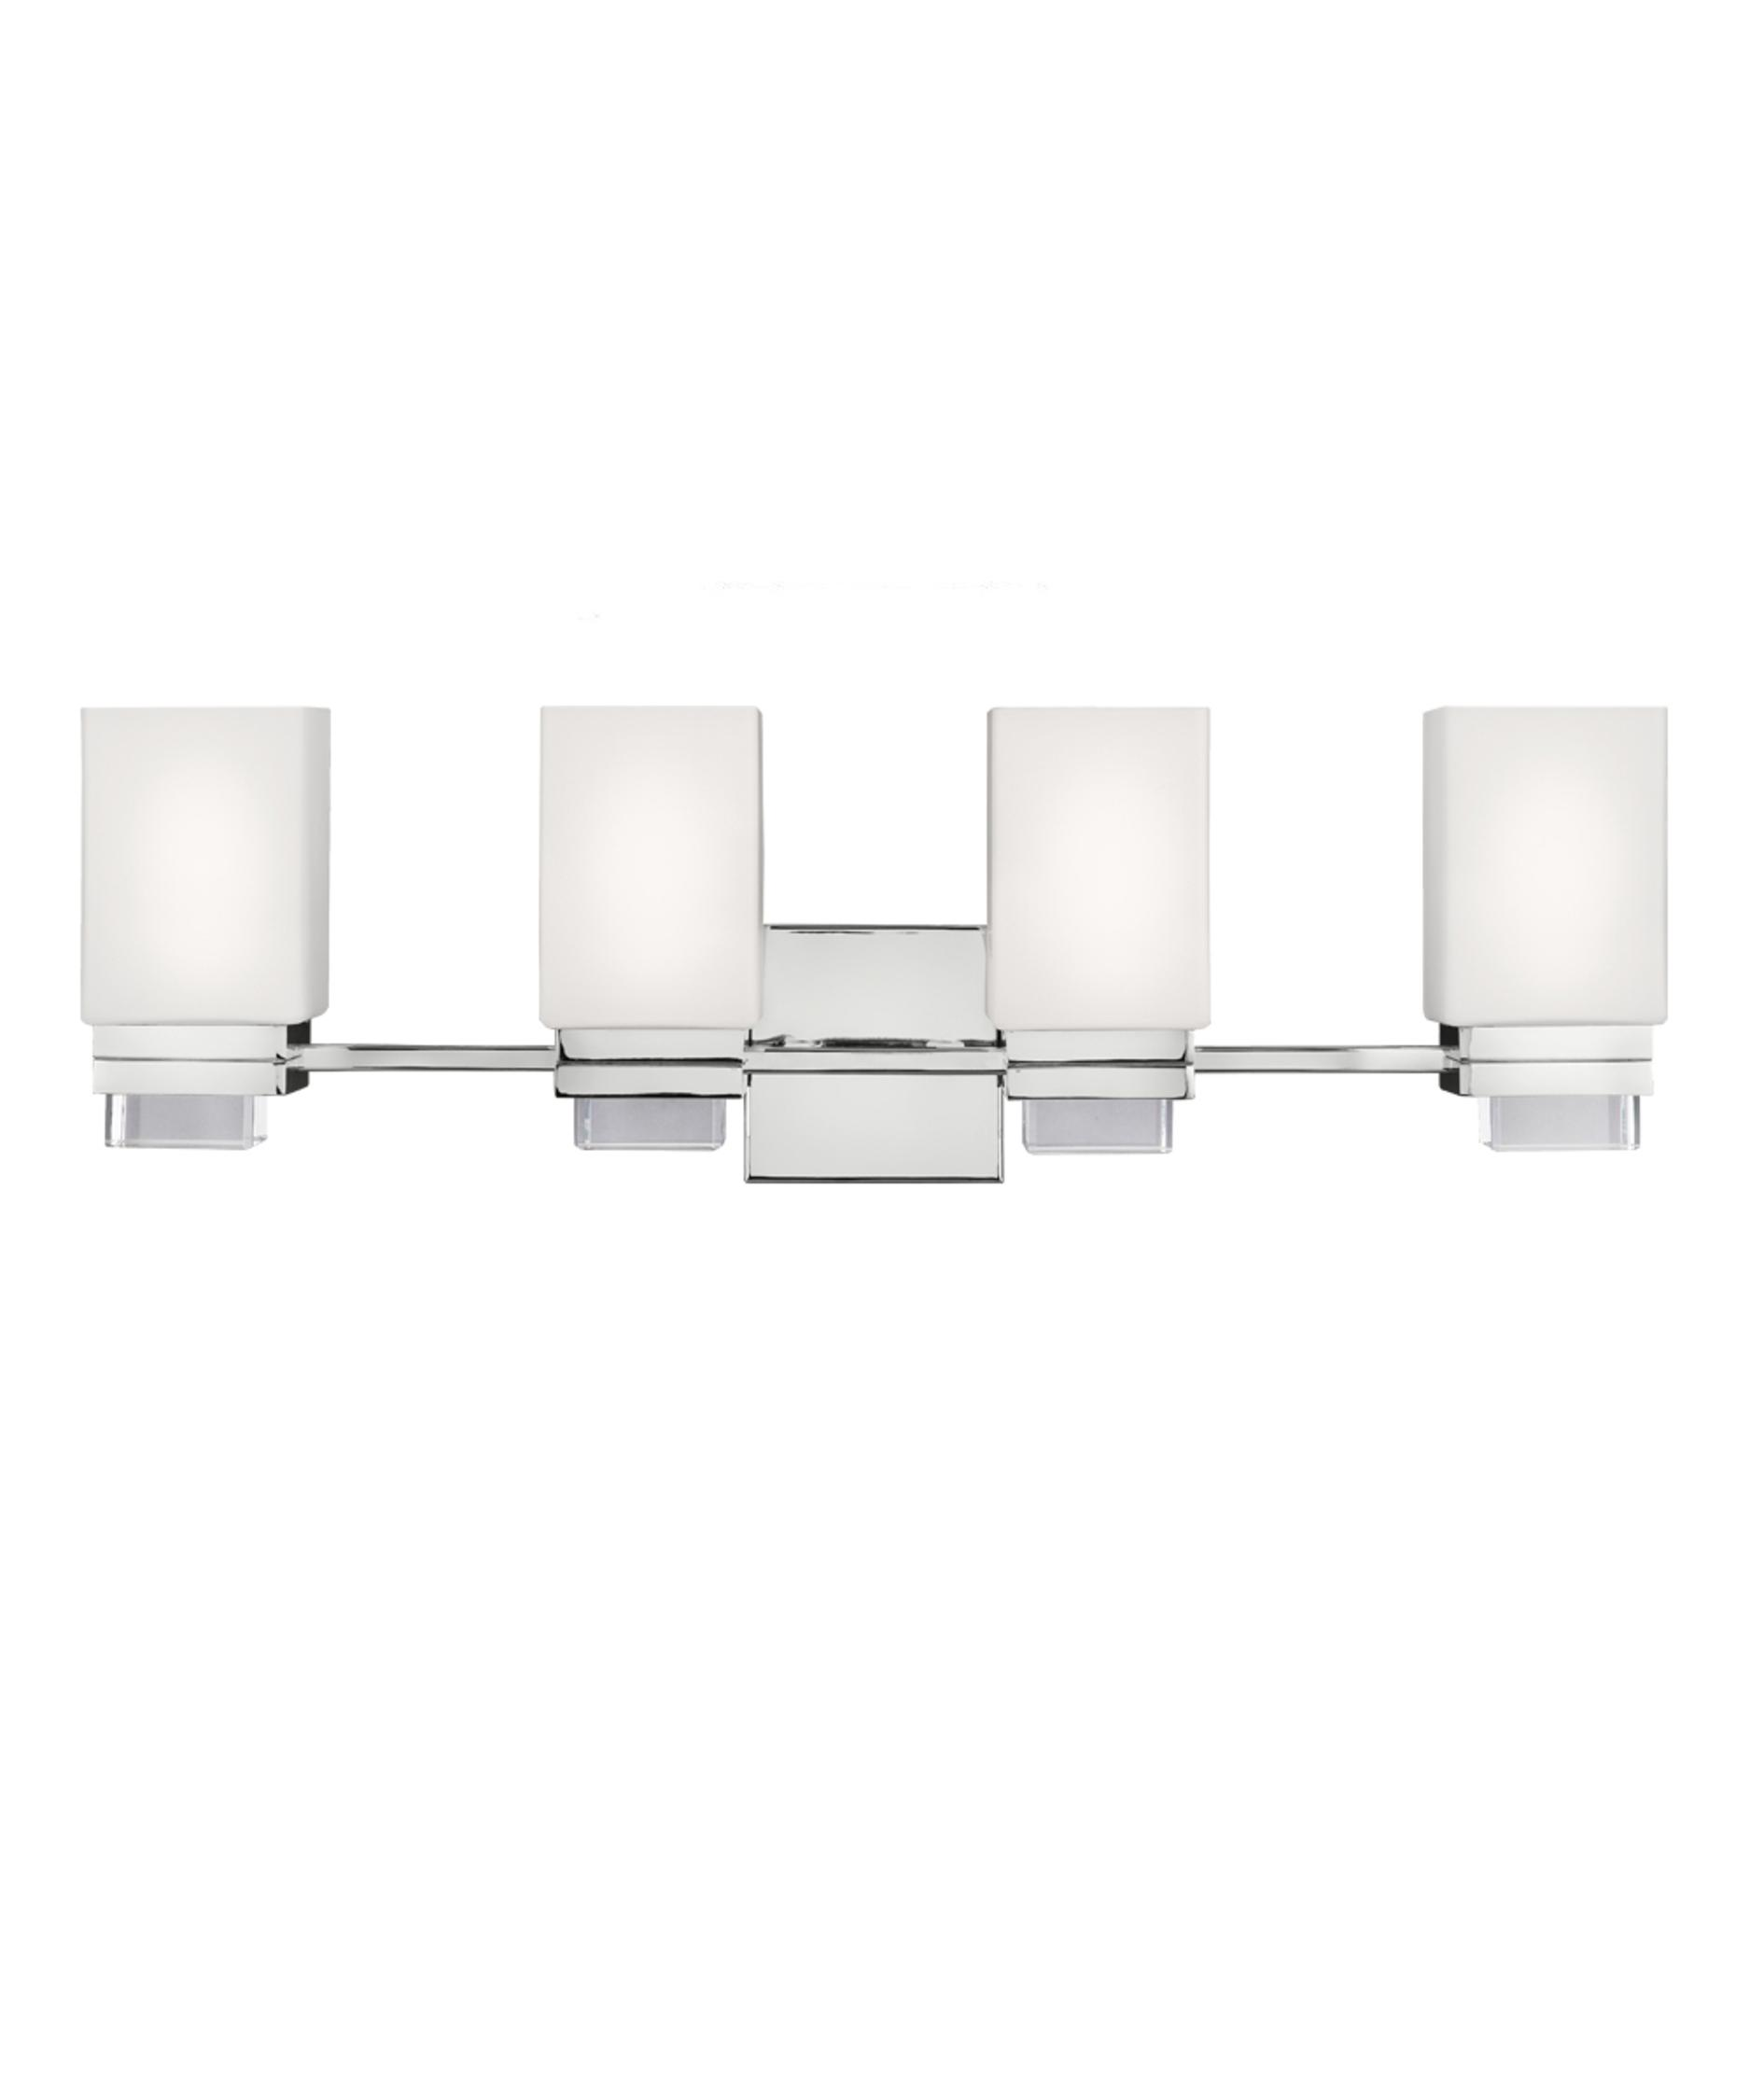 Murray Feiss VS Maddison 29 Inch Wide Bath Vanity Light